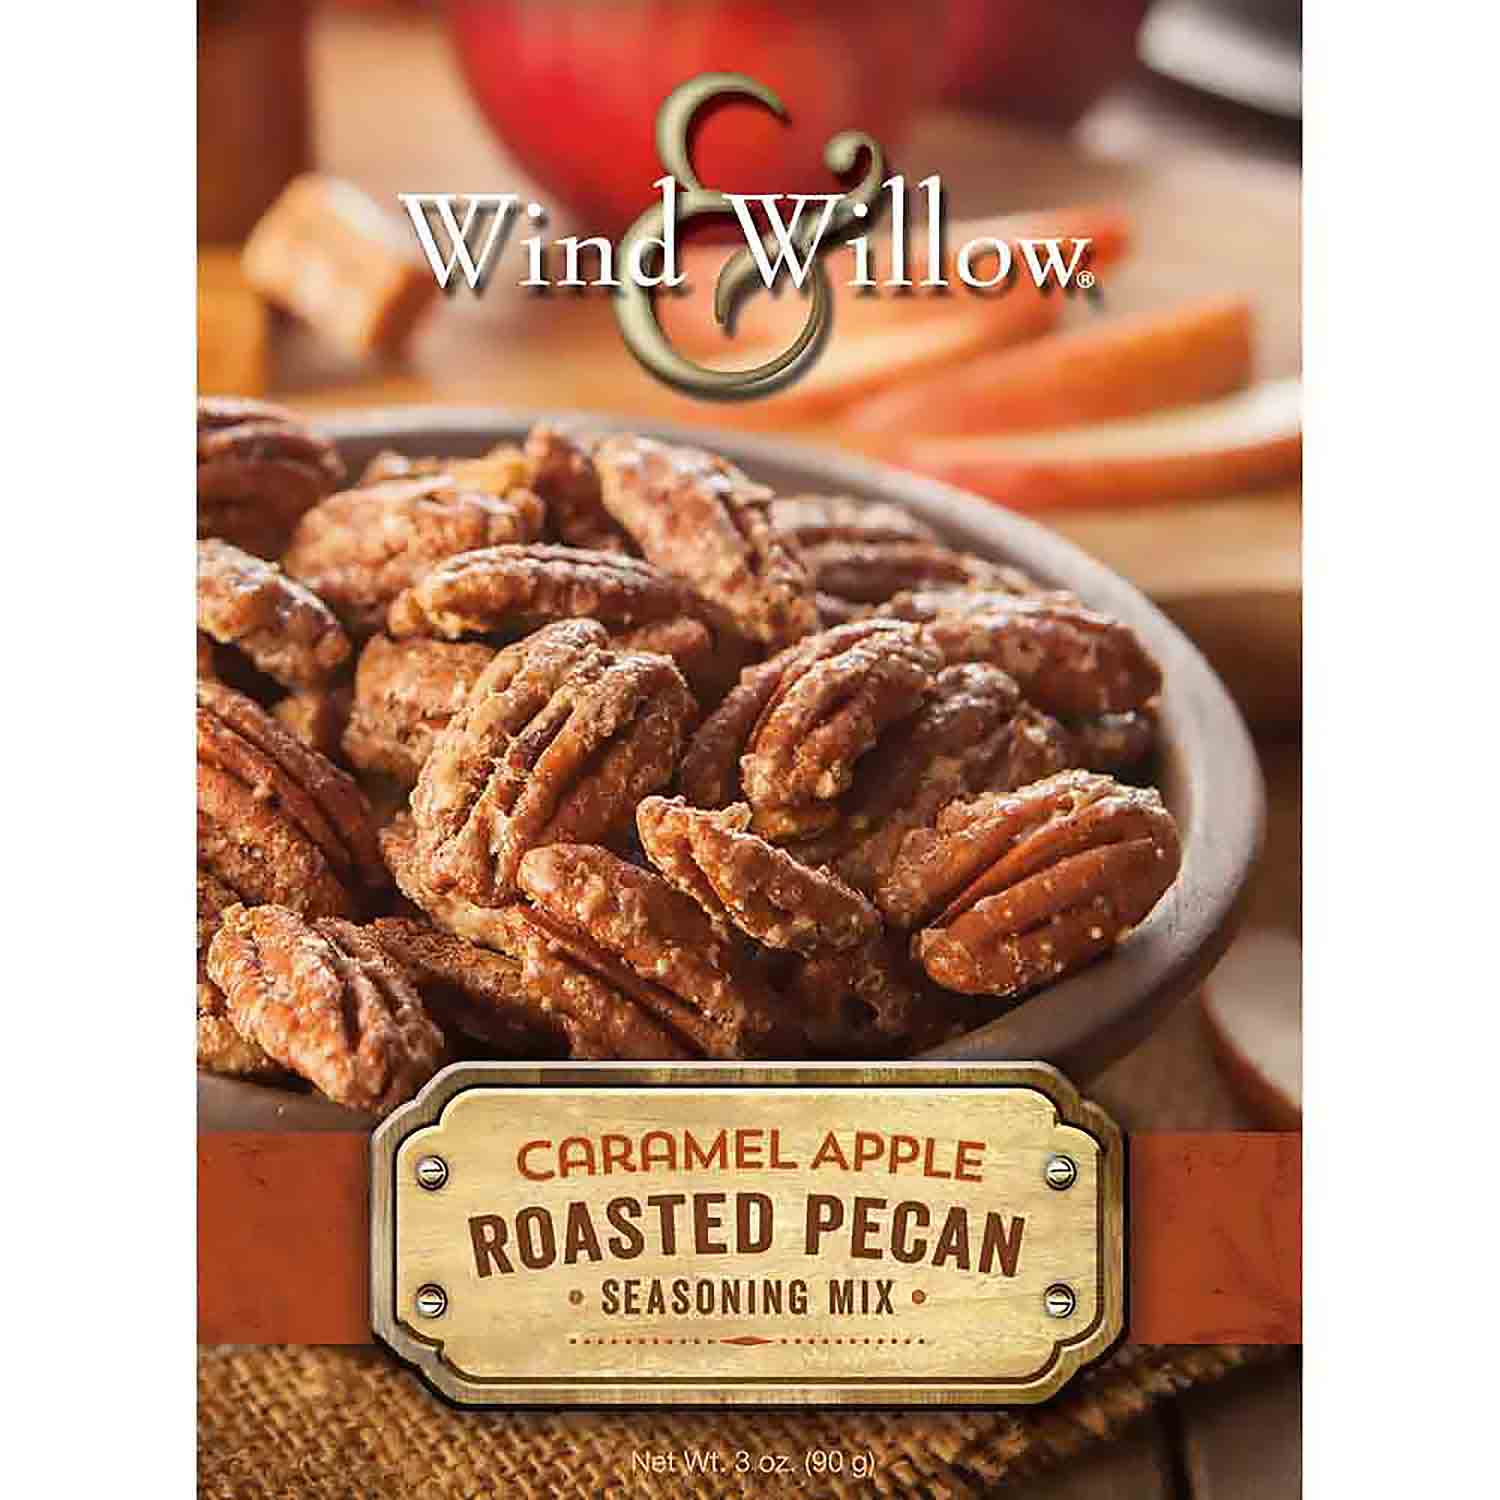 Caramel Apple Roasted Pecan Seasoning Mix